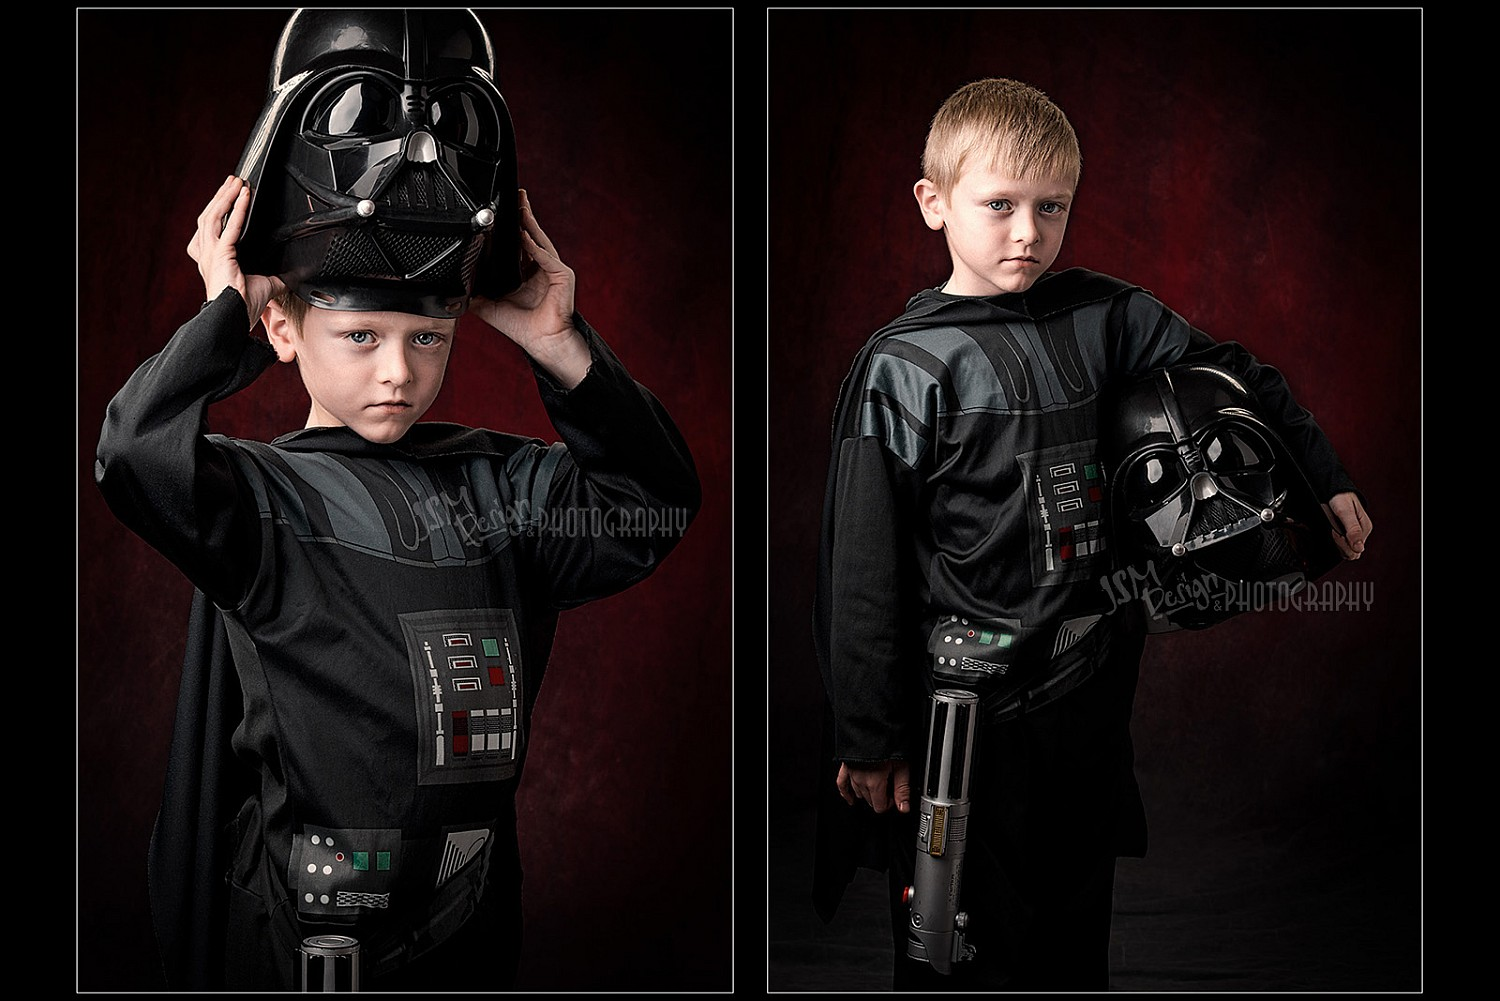 Darth2_1600x1067wm.jpg